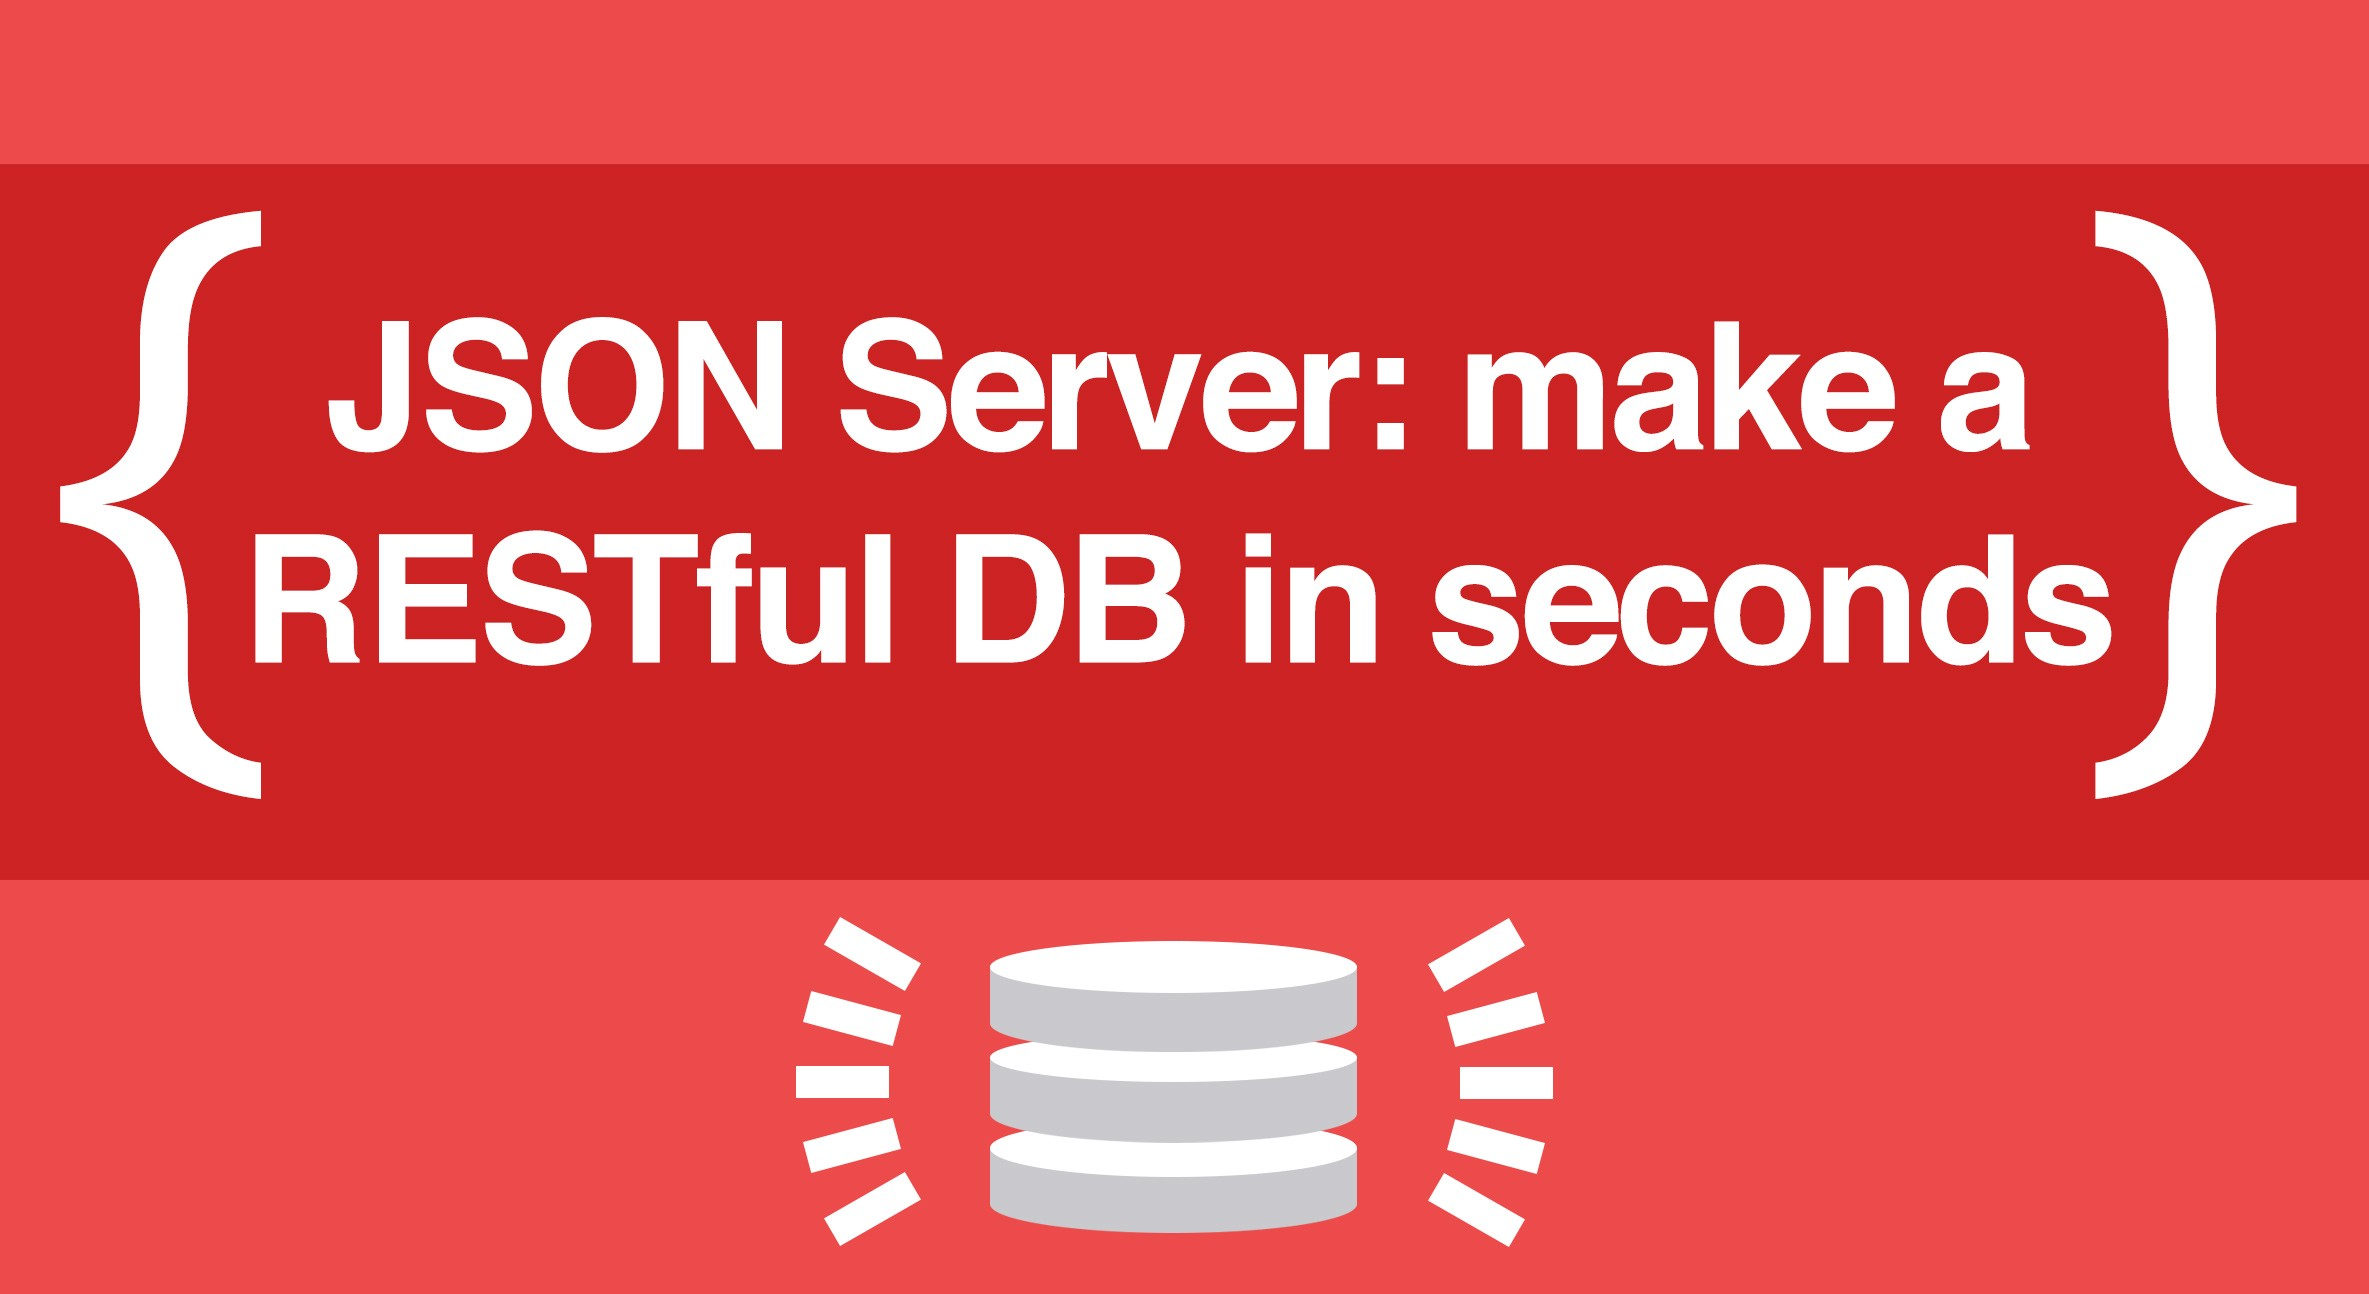 Using JSON Server to Create a Restful Server in 5 seconds